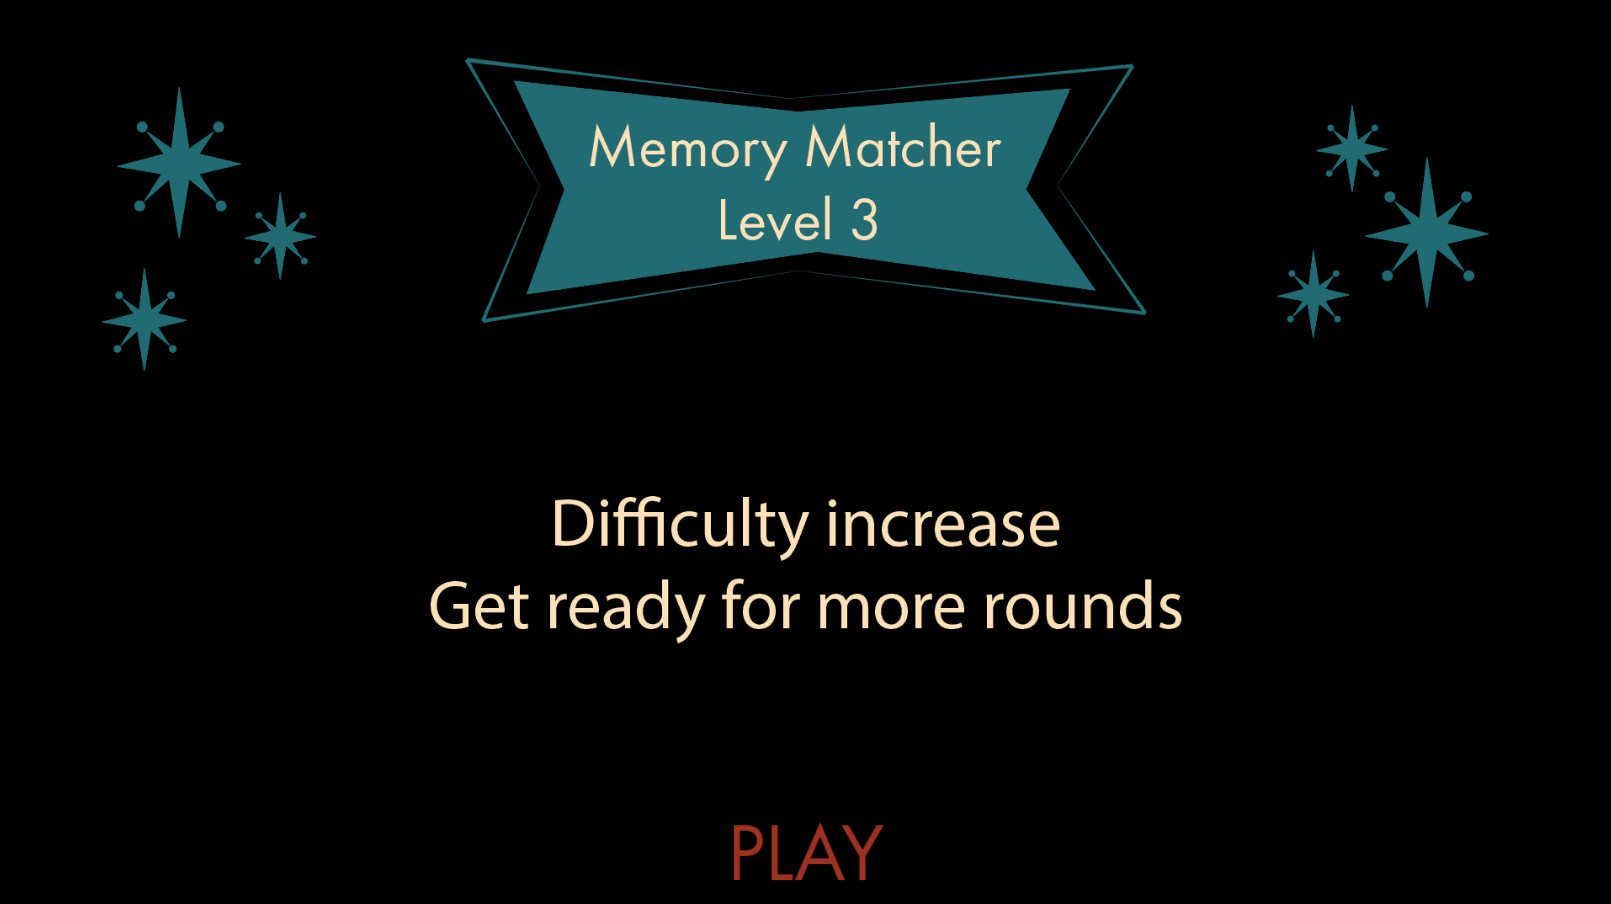 By now, the player should know how to play this type of mini game. Instead of an explanation, there is a warning that says there are more rounds so they are prepared.